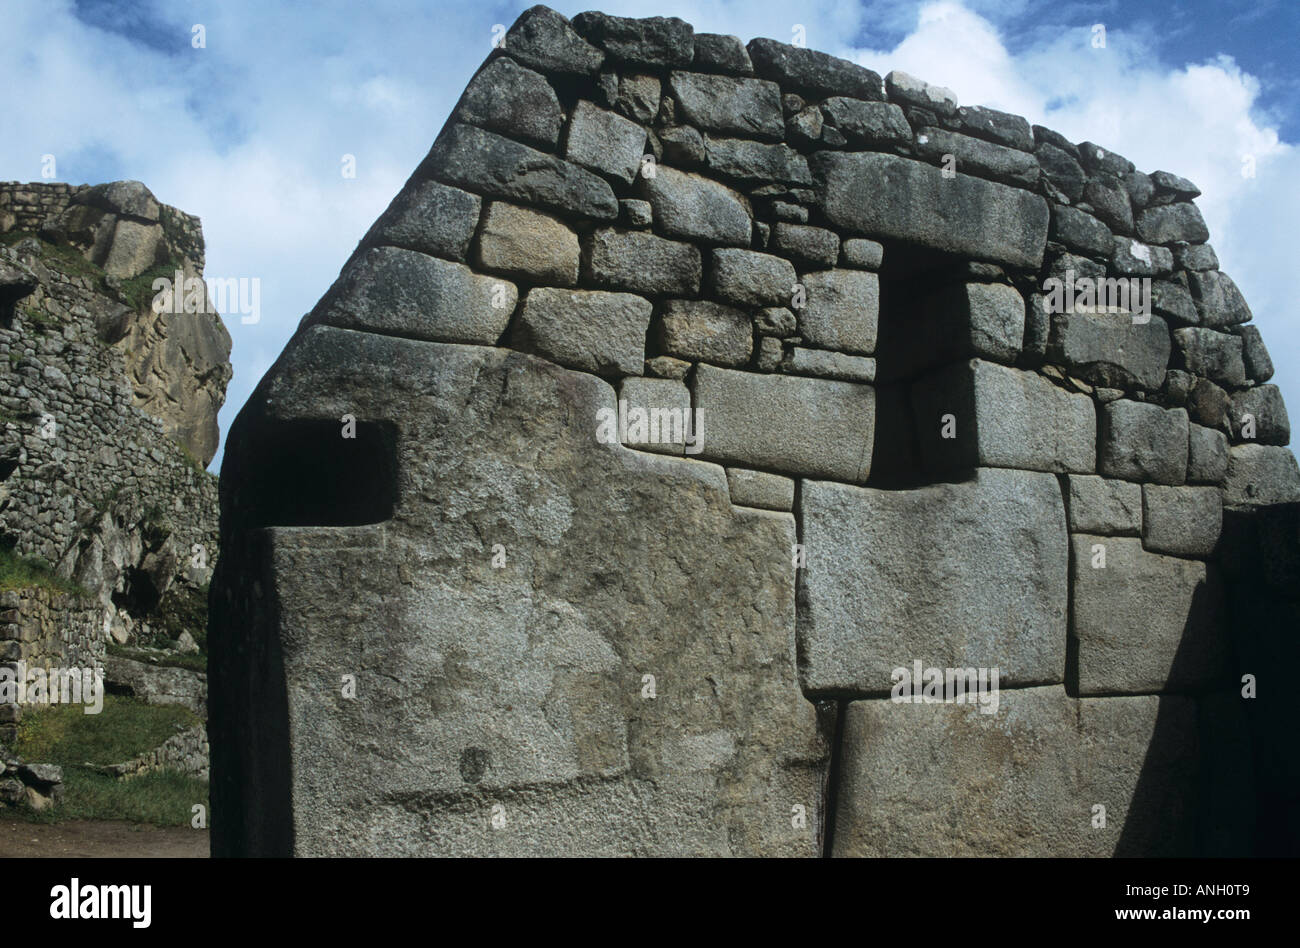 In the sacred Inca city of Machu Picchu an Inca building with a 32-sided stone is one of the sanctuary's many marvels Stock Photo